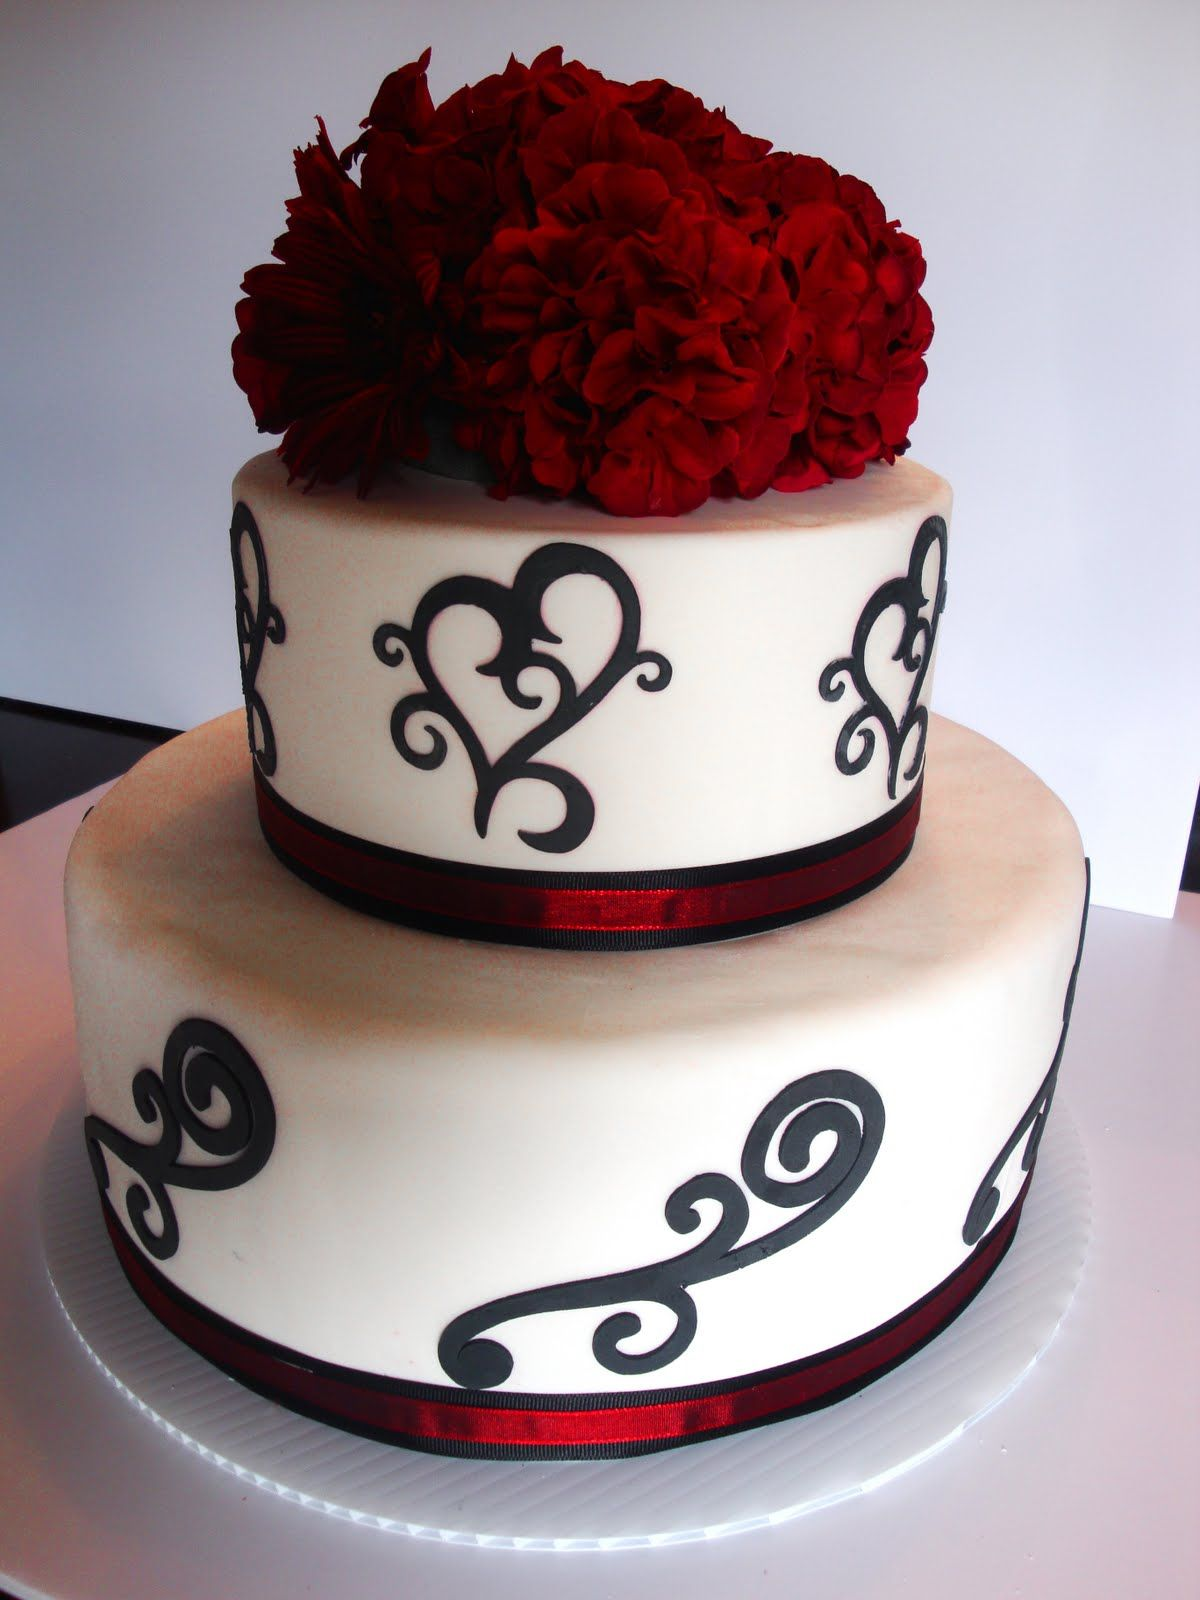 Such A Pretty Cake. I Love The Colors Combination, All It Needs Is Some